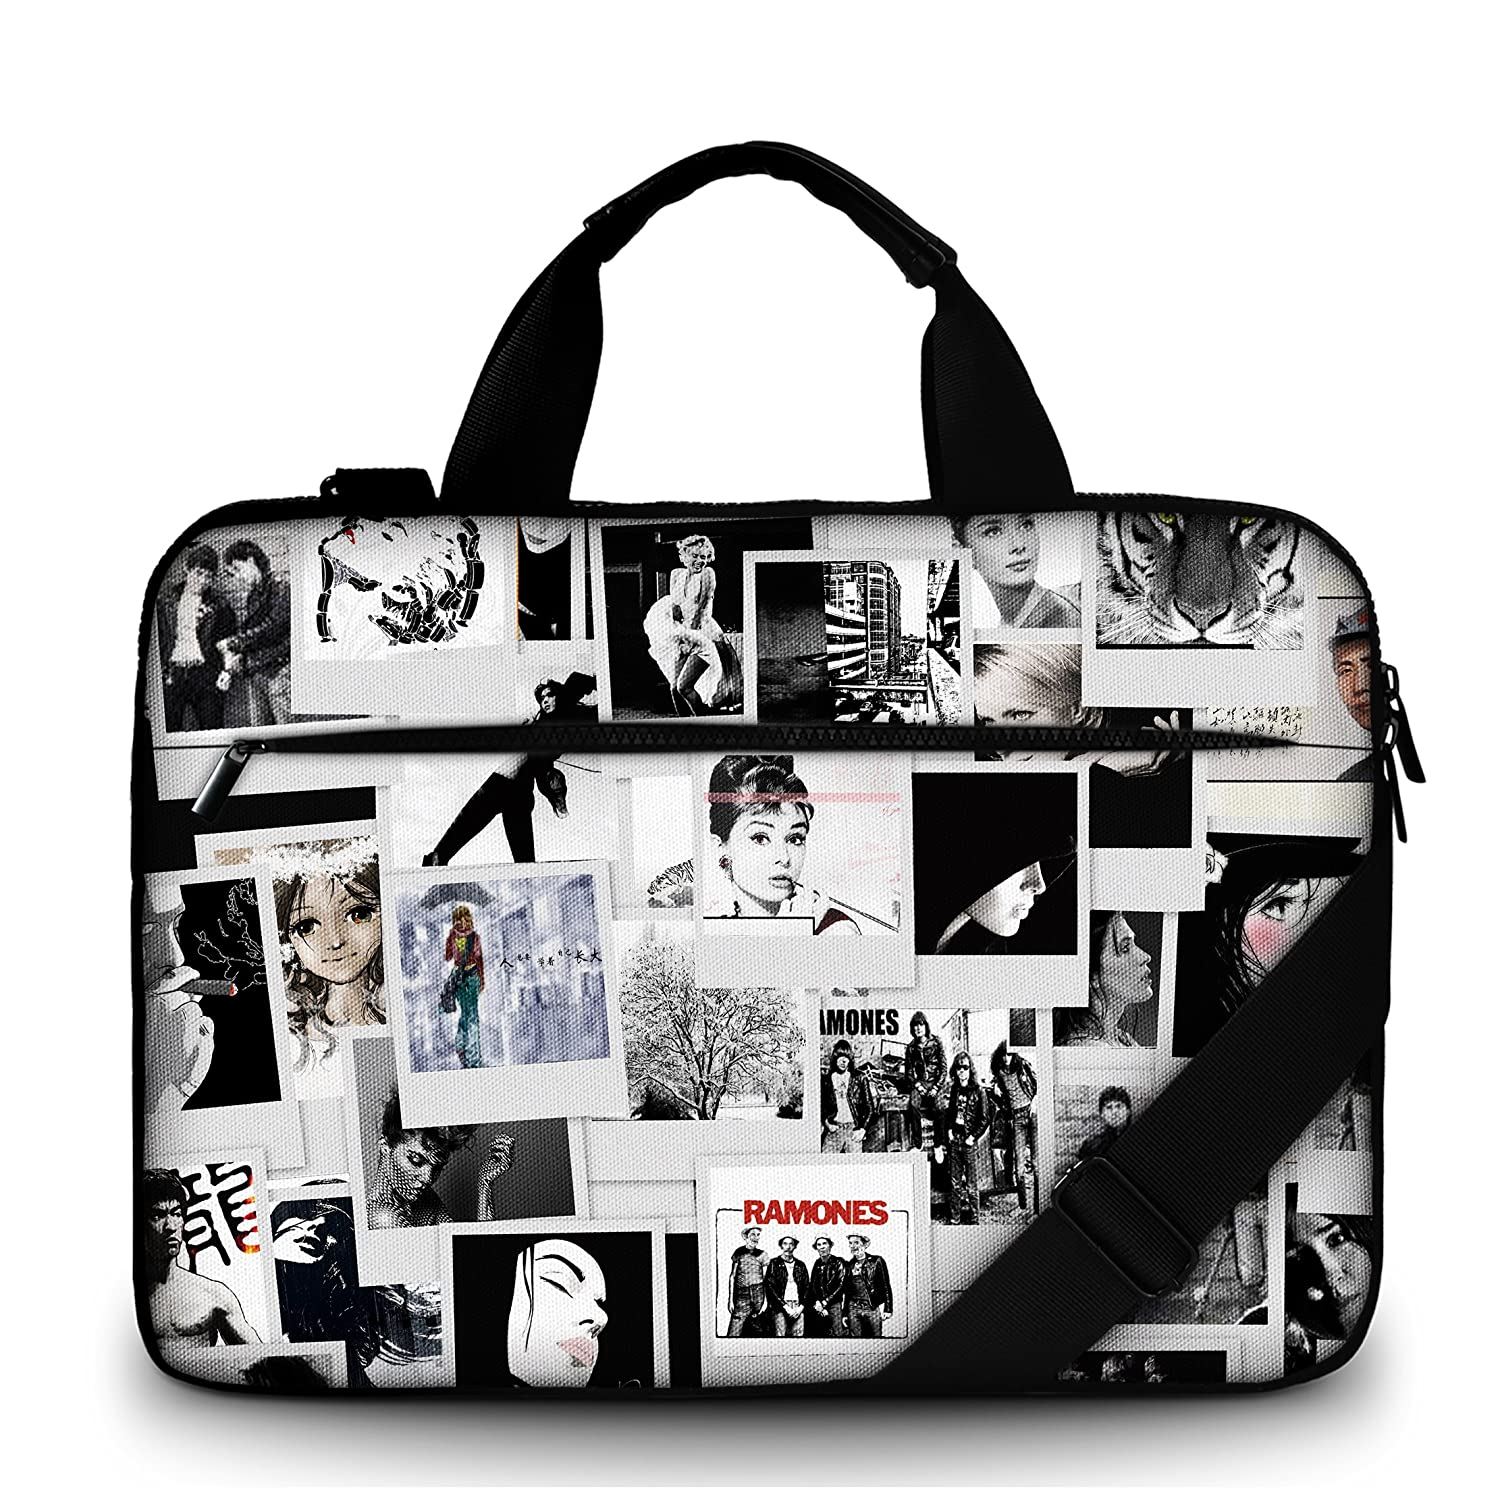 Amazon.com: MySleeveDesign 17.3 Inch Canvas Laptop Carry Bag Notebook Case with Shoulder Strap: Computers & Accessories